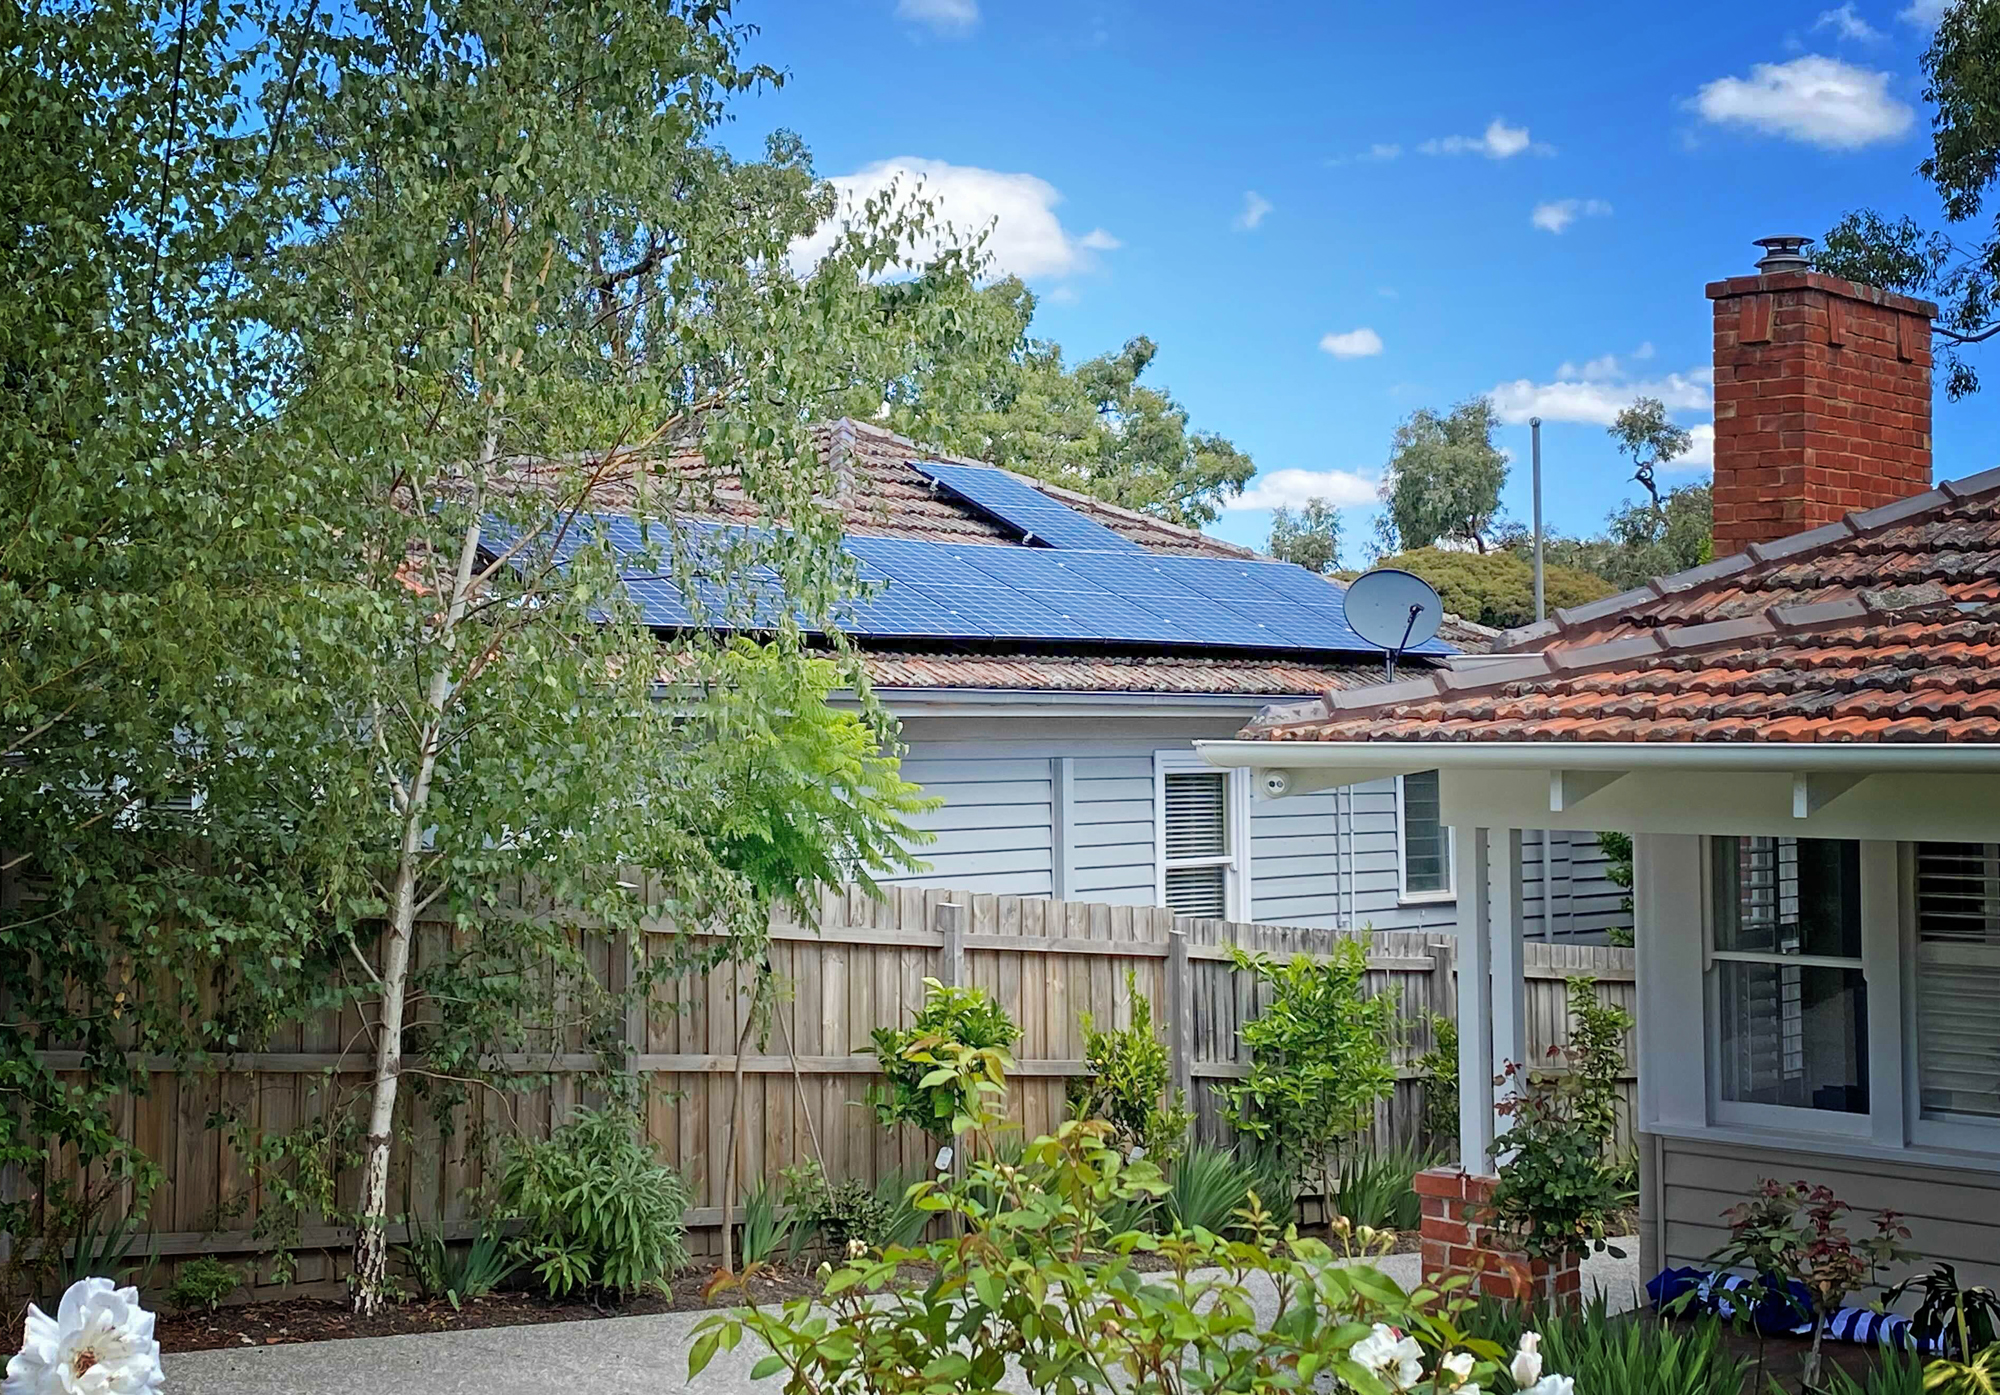 Residential Solar - My perspective